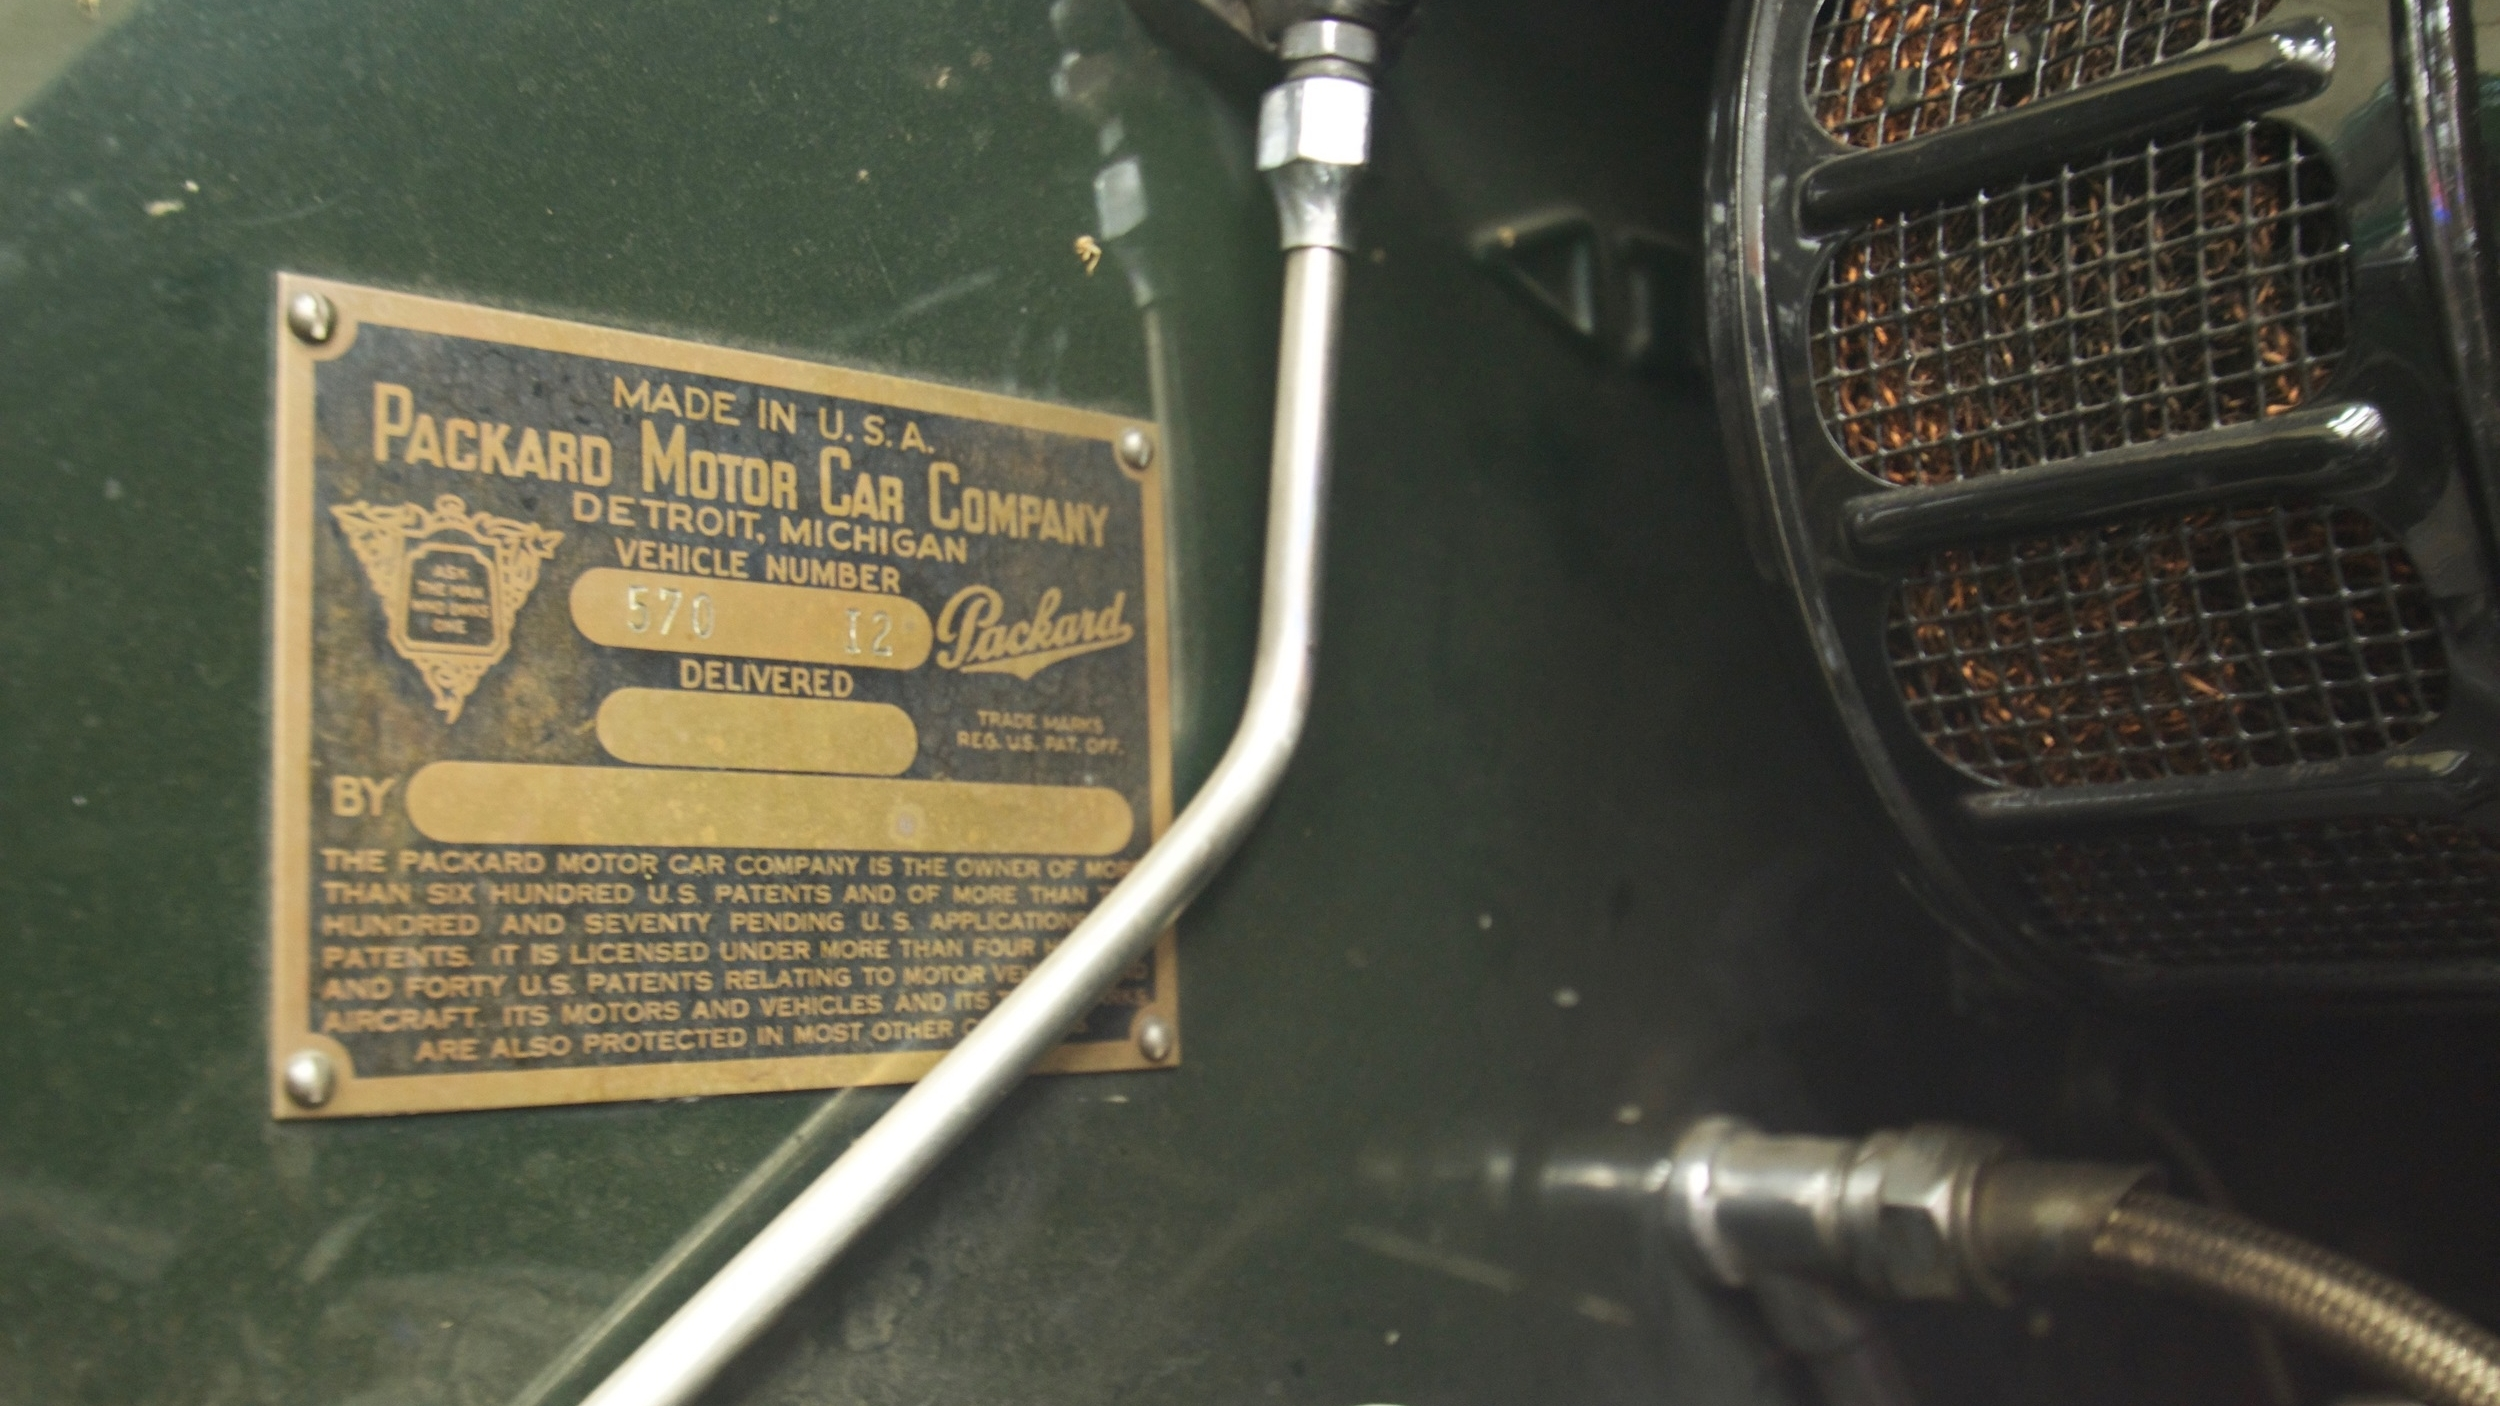 Find used rare Packard parts